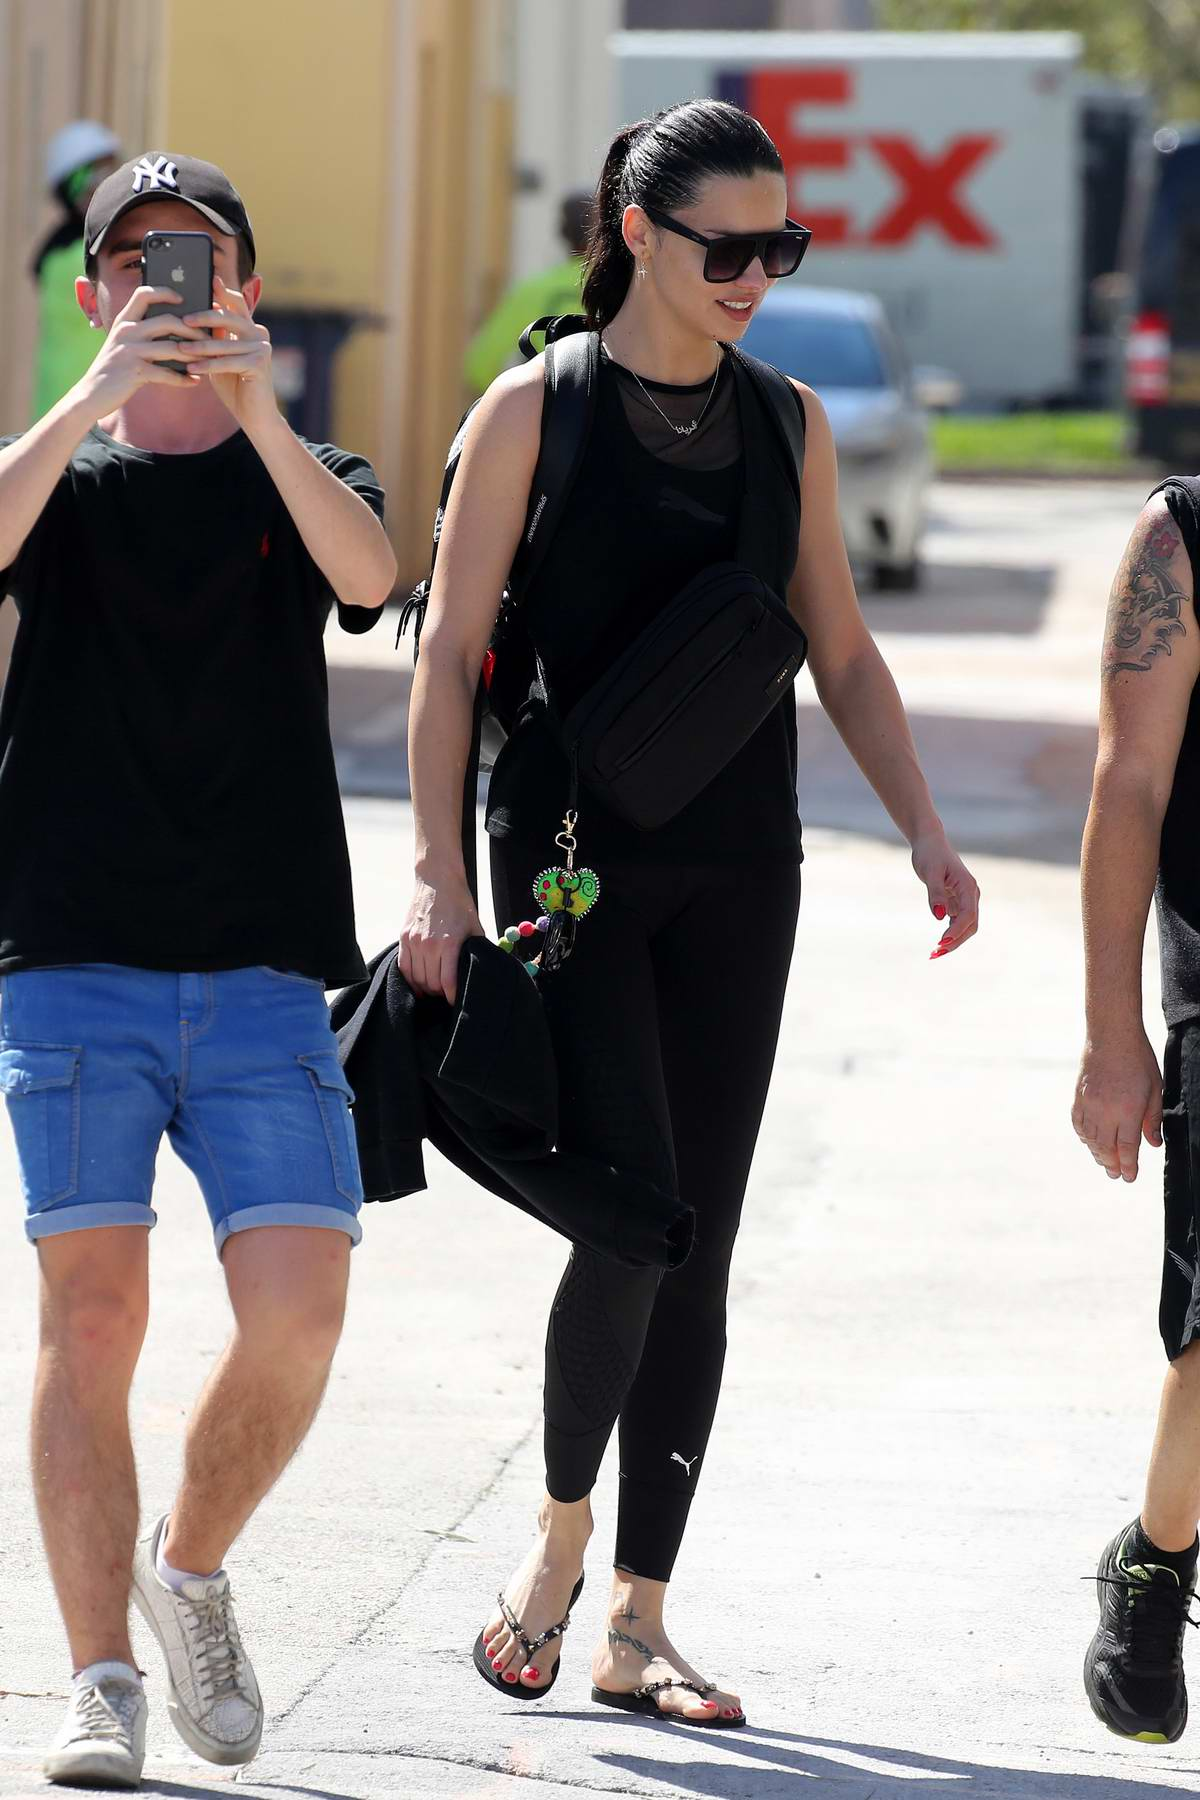 Adriana Lima wears a black Puma outfit as she leaves a workout in Miami, Florida